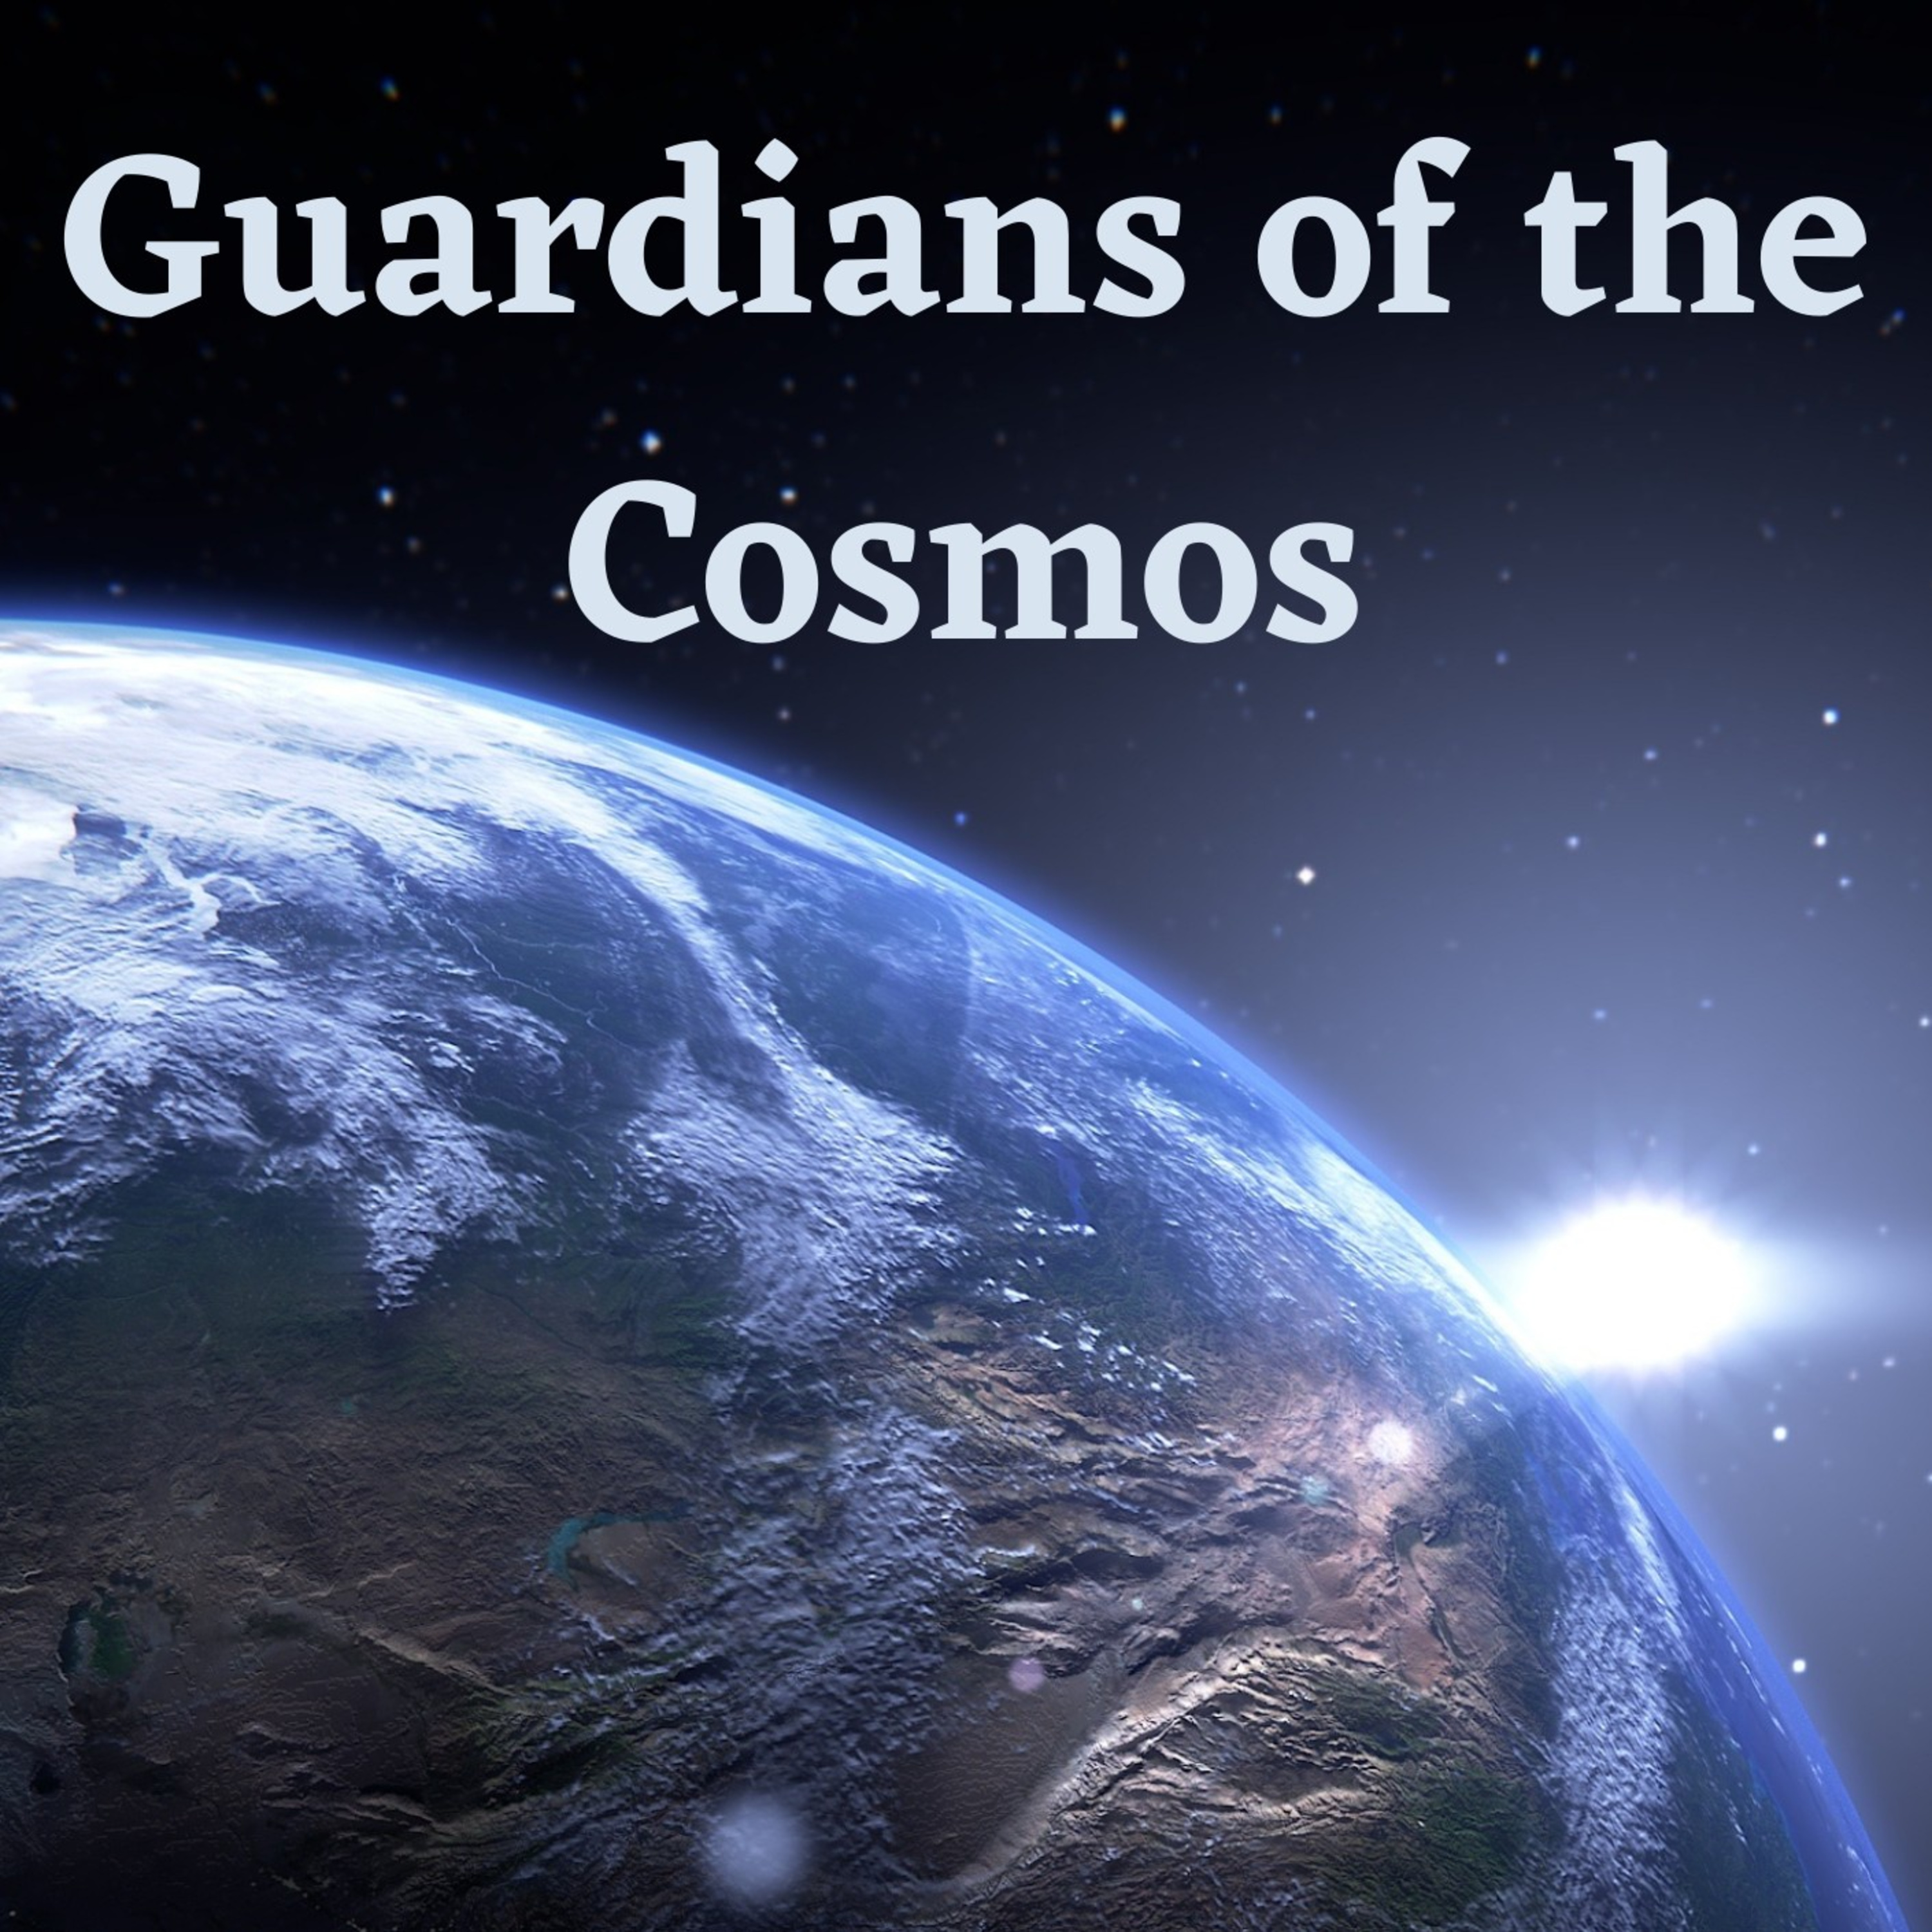 Guardians of the Cosmos